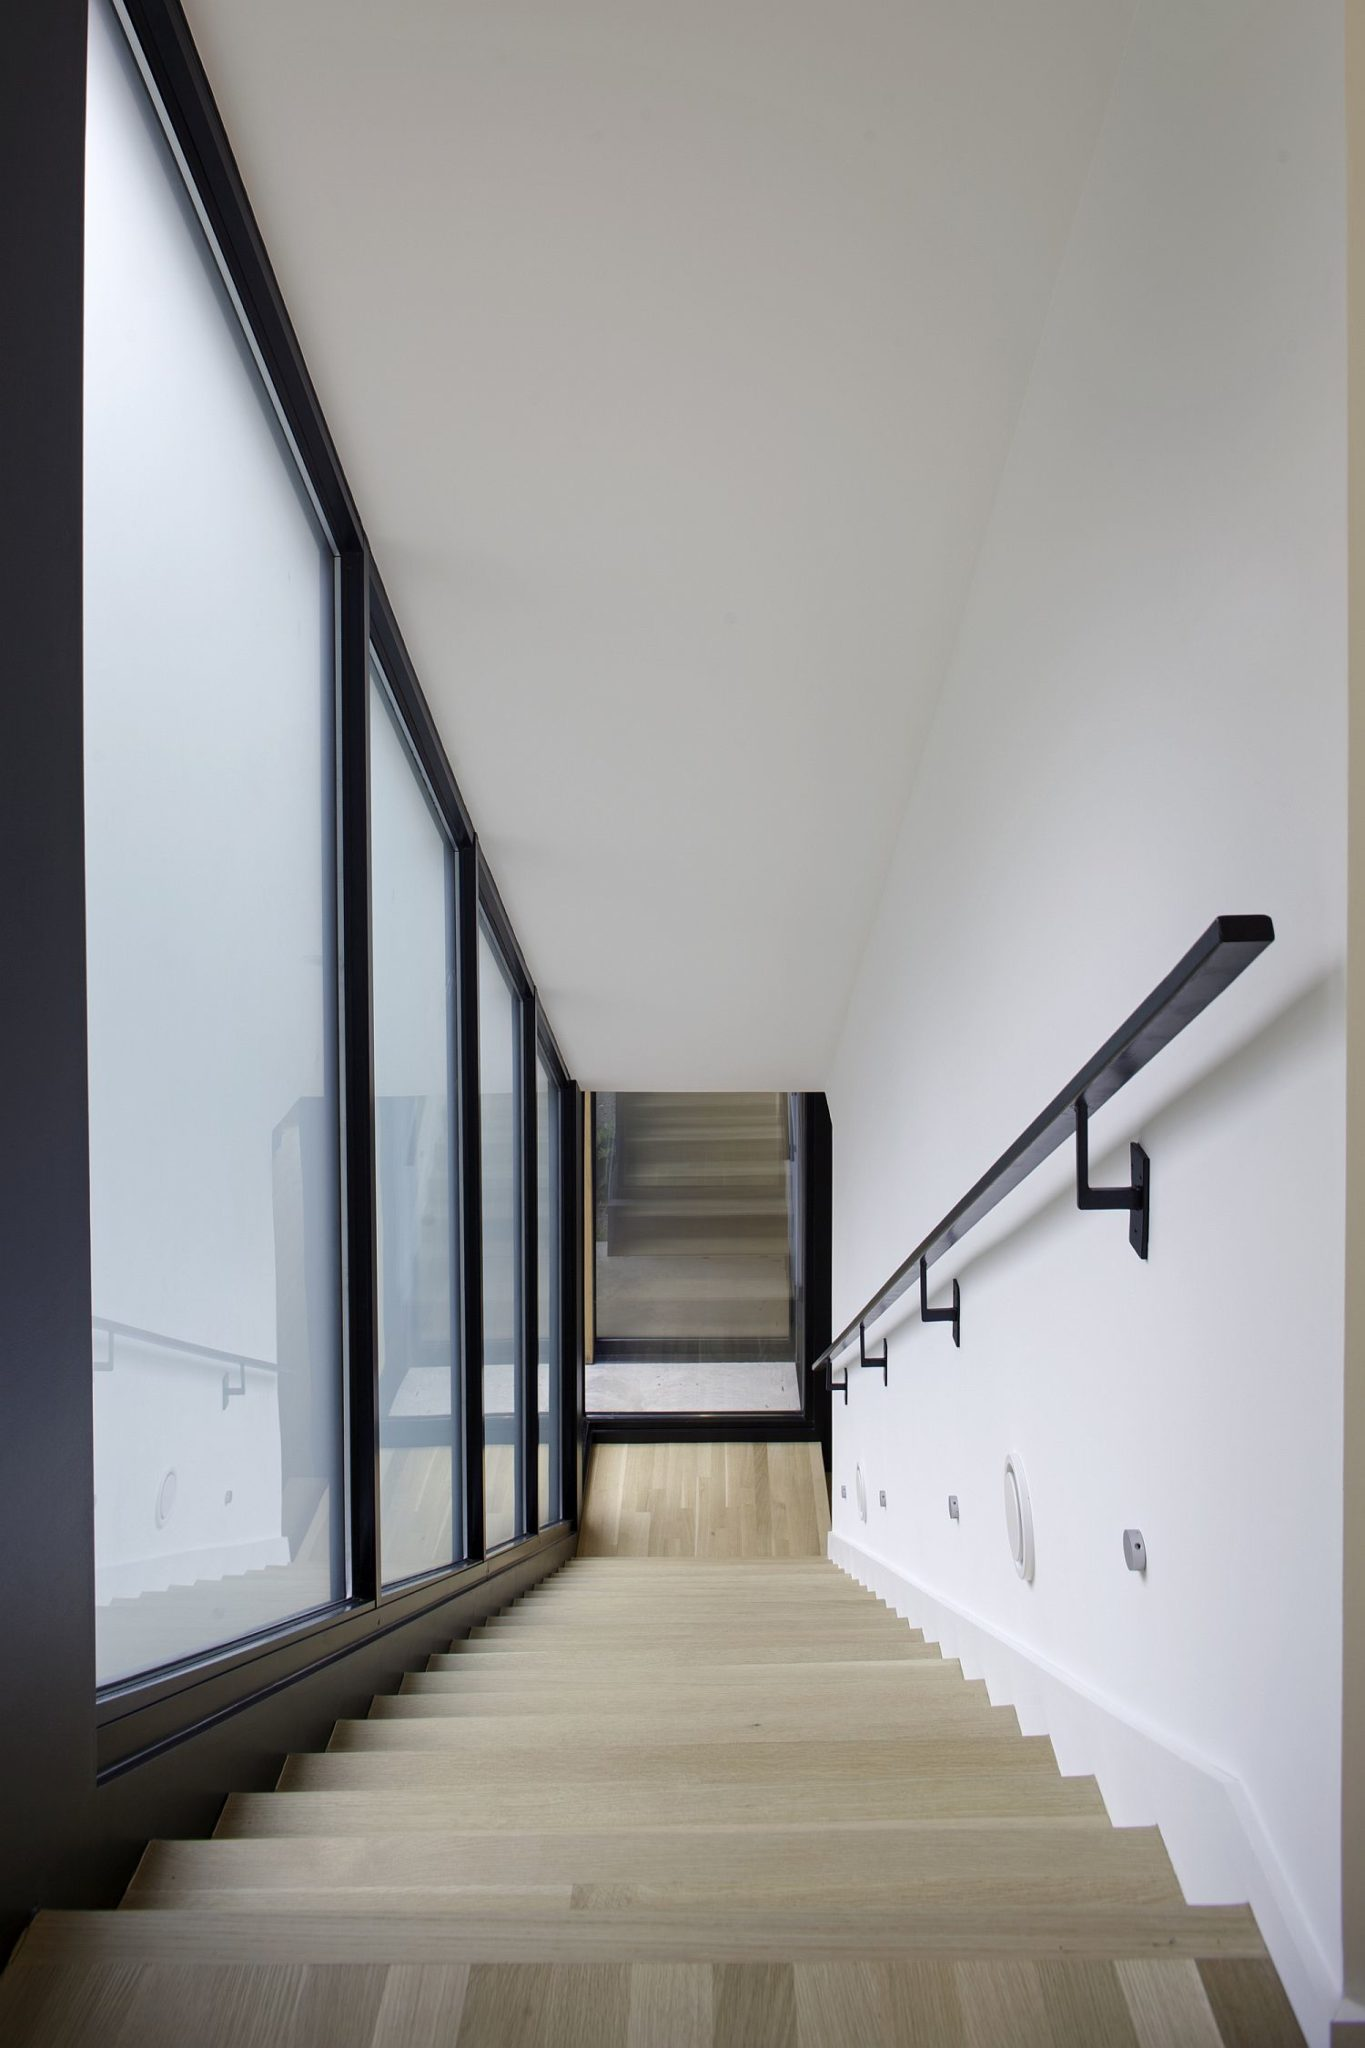 Light-filled staircase connects the various levels of the house